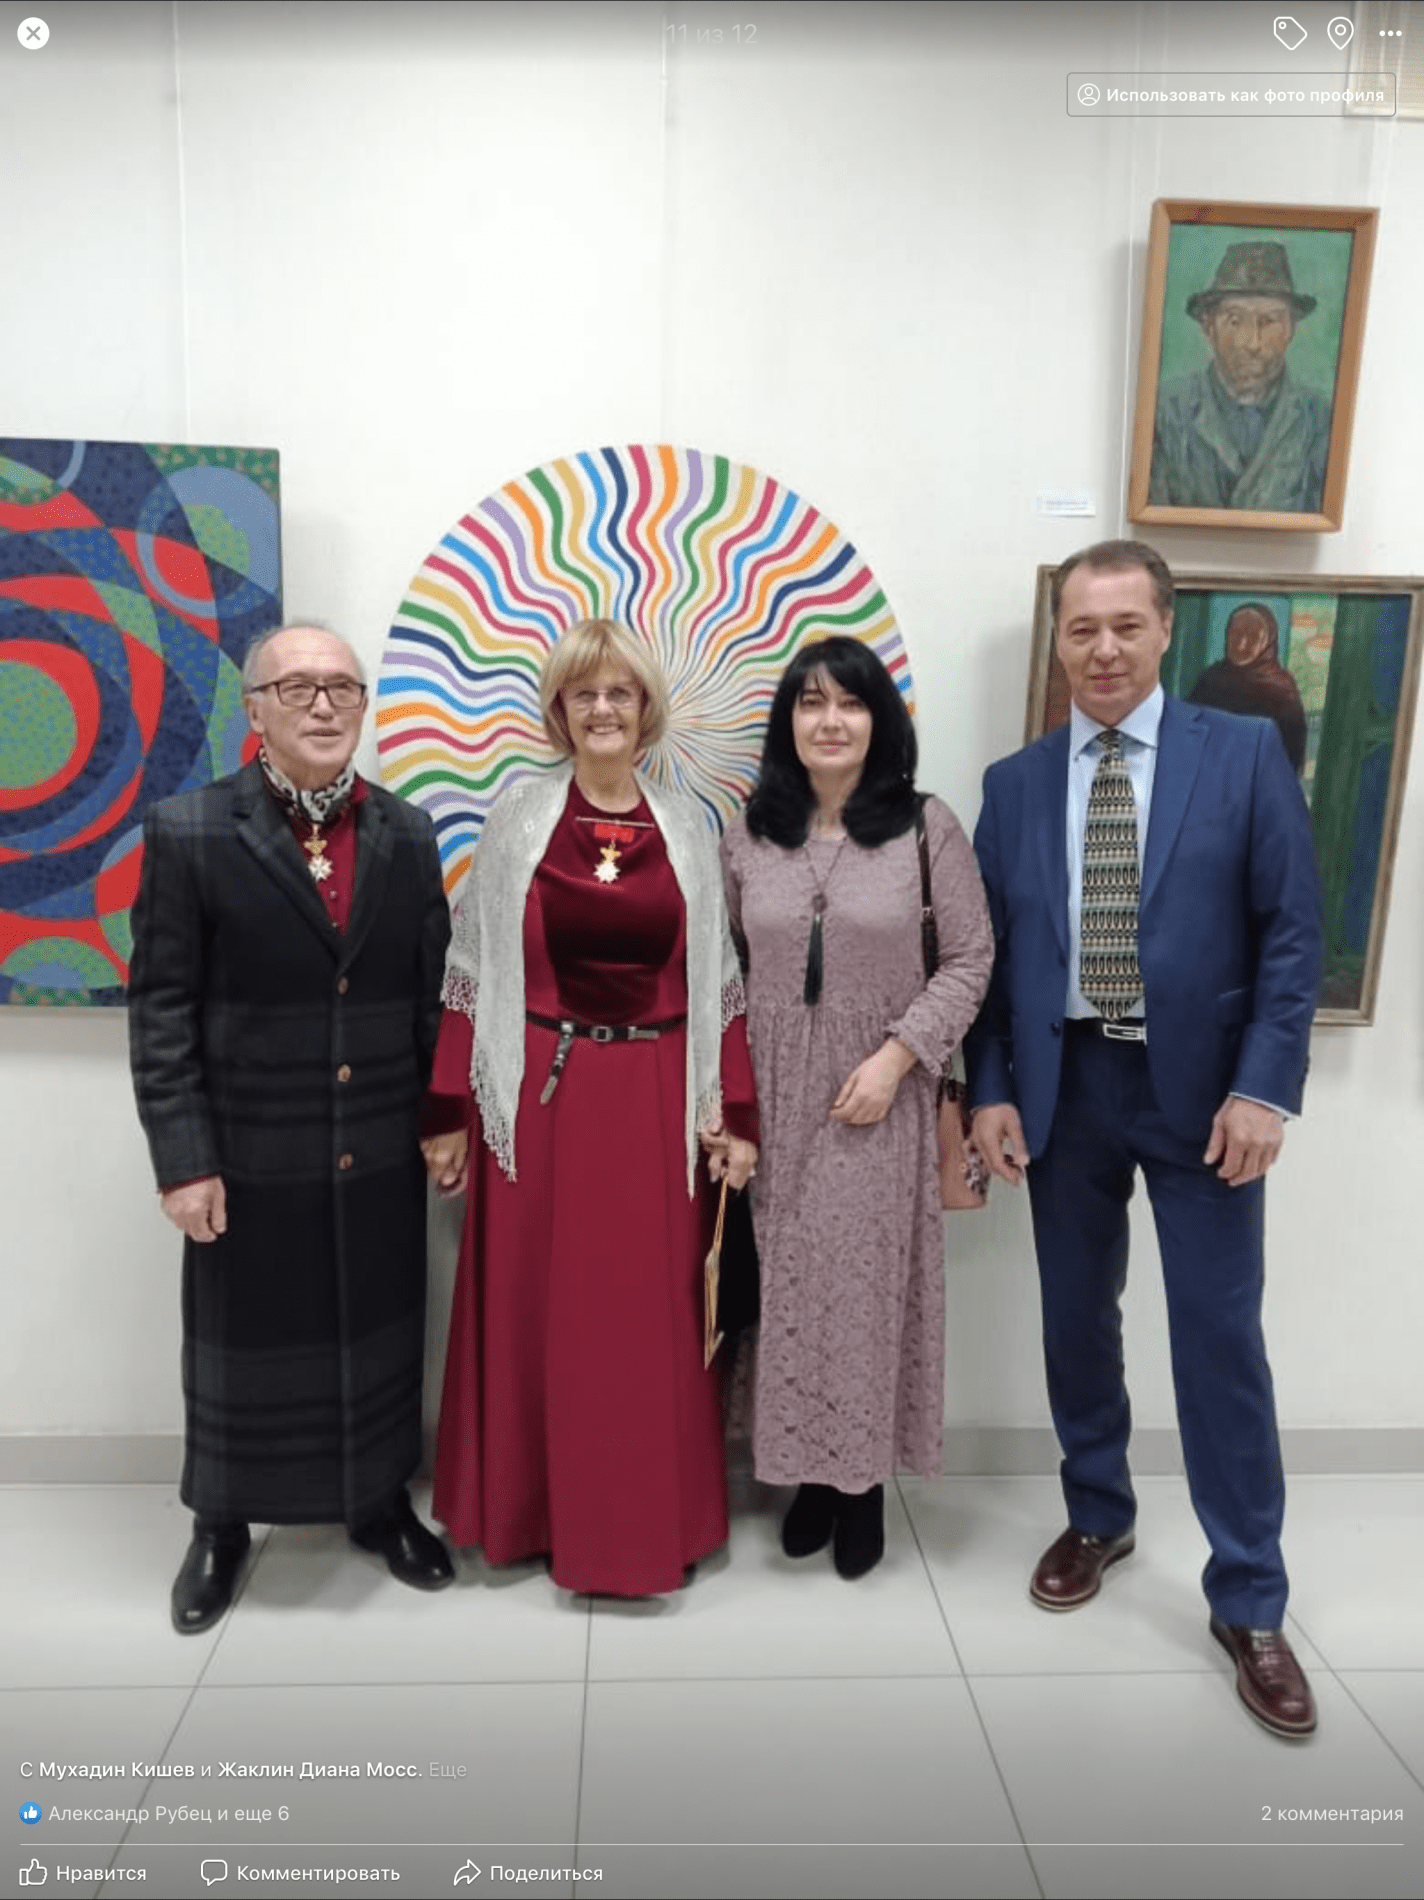 A Retrospective exhibition of Muhadin Kishev's art works to mark the artist's 80th birthday and 60 years of a career in art opens at 17.00 on Sunday, November 3rd